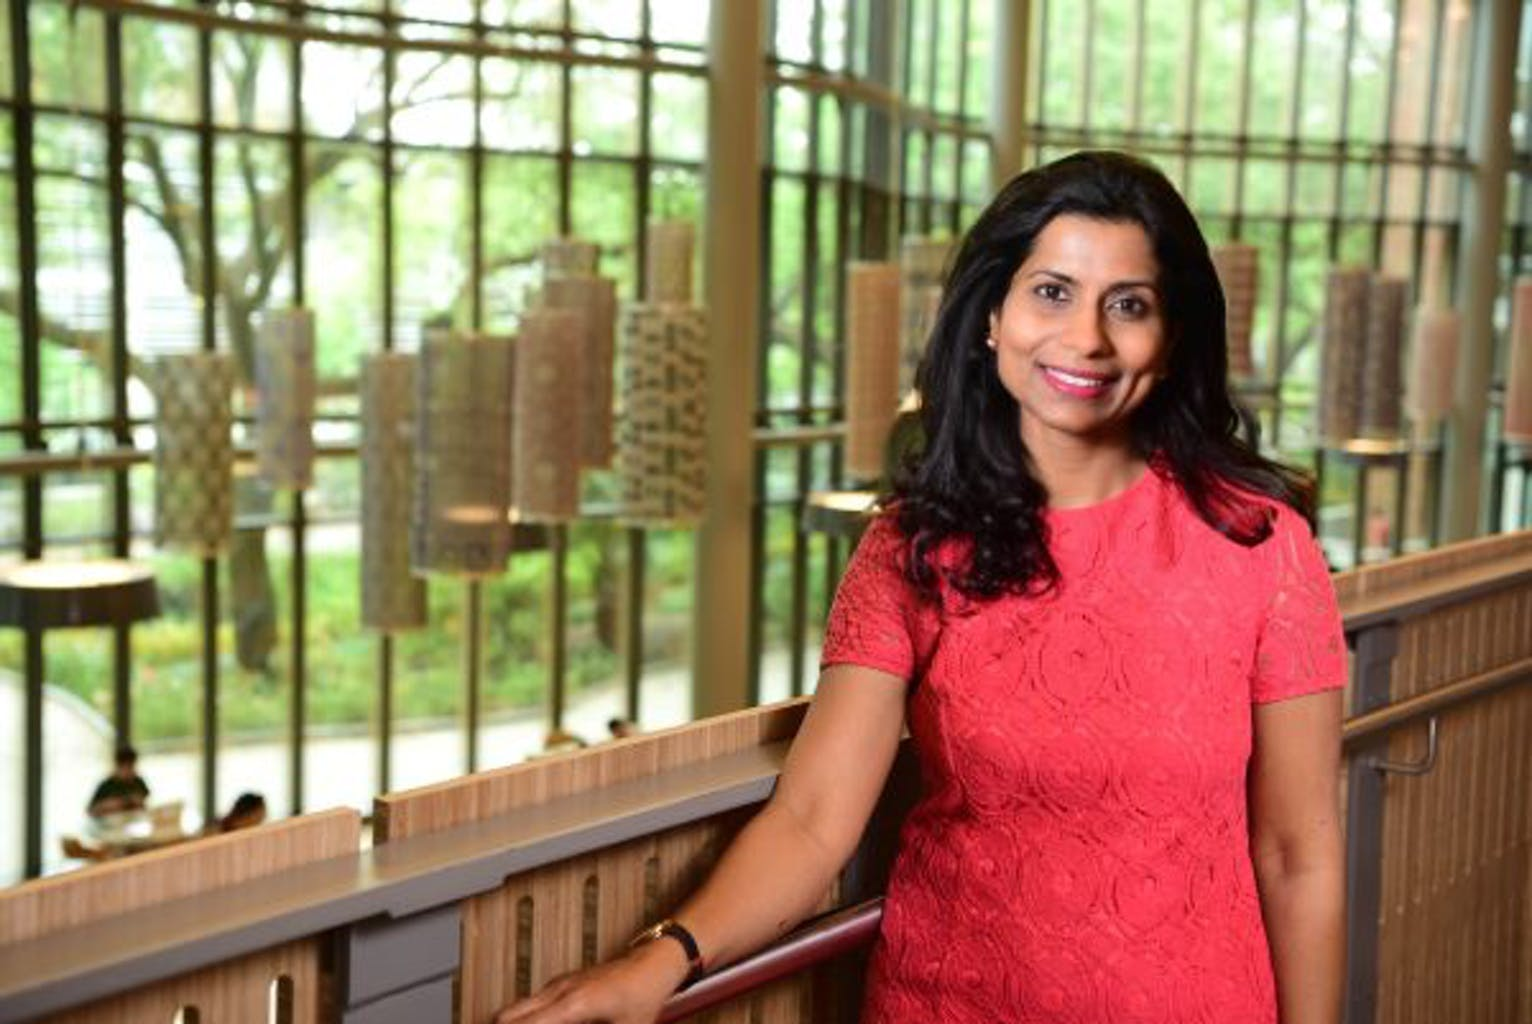 SEEMA Pioneer and communicator Ambika Prasad, seema network, seema.com, seema woman, seema newsletter, seema 2020, seema trends, seema NOLA, NOLA, New Orleans, stereotypes, South Asian women, South Asian women in academics